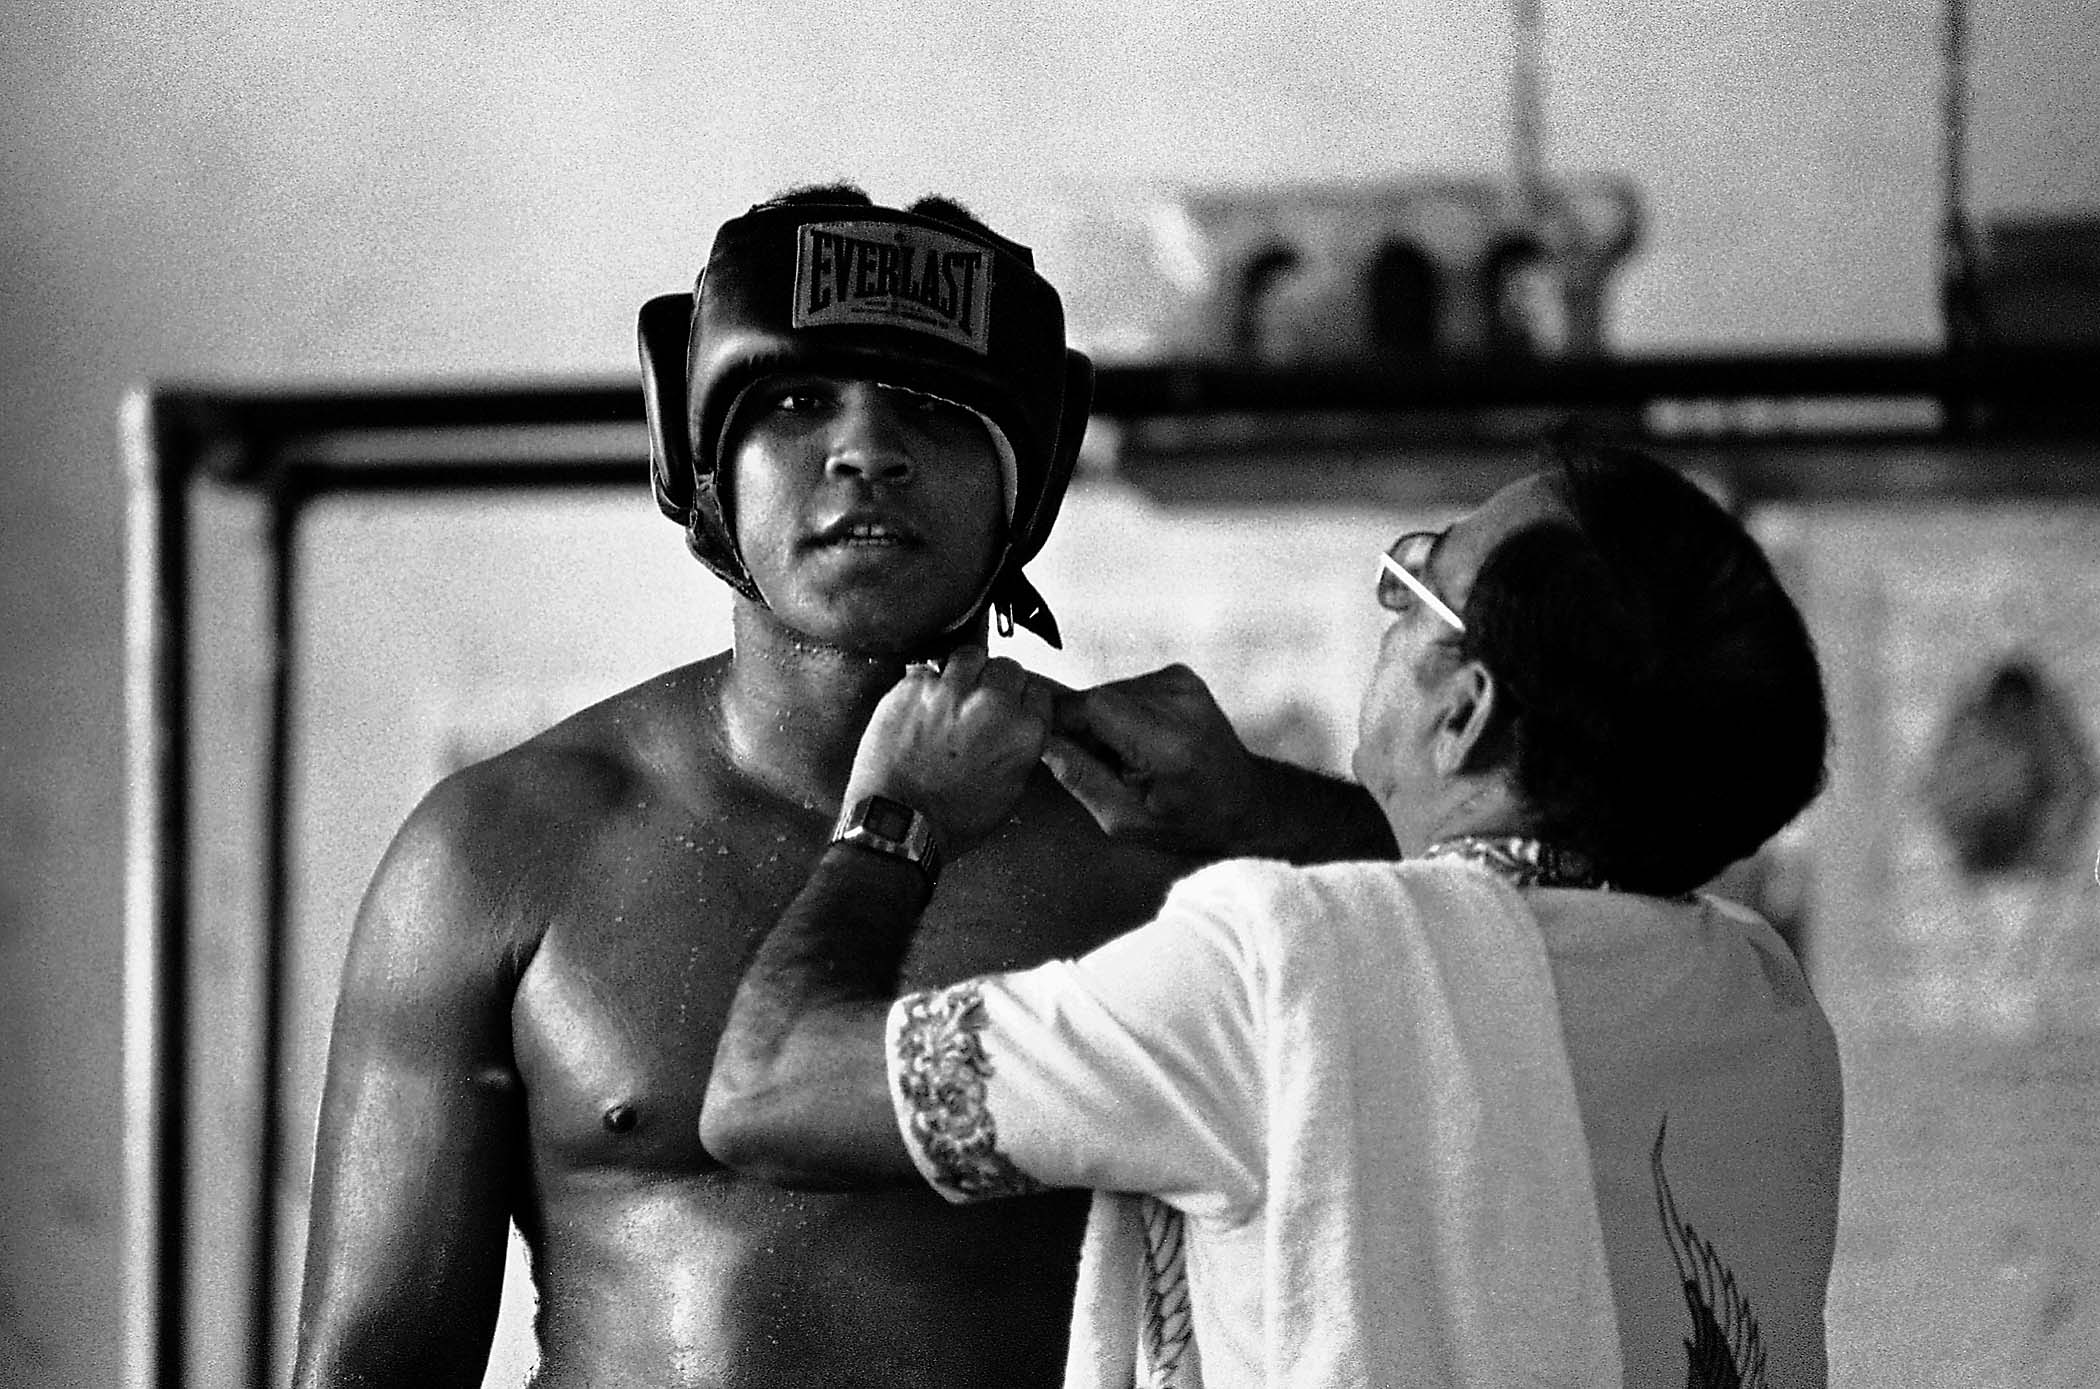 World heavyweight champion Muhammad Ali has his head gear adjusted by trainer Chris Dundee at the 5th Street Gym in December, 1977. Ali was preparing for his  fight against Olympic gold medalist Leon Spinks, which he lost on February 15, 1978 in Las Vegas. Ali went on the reclaim the title in a rematch later that year. (Associated Press)